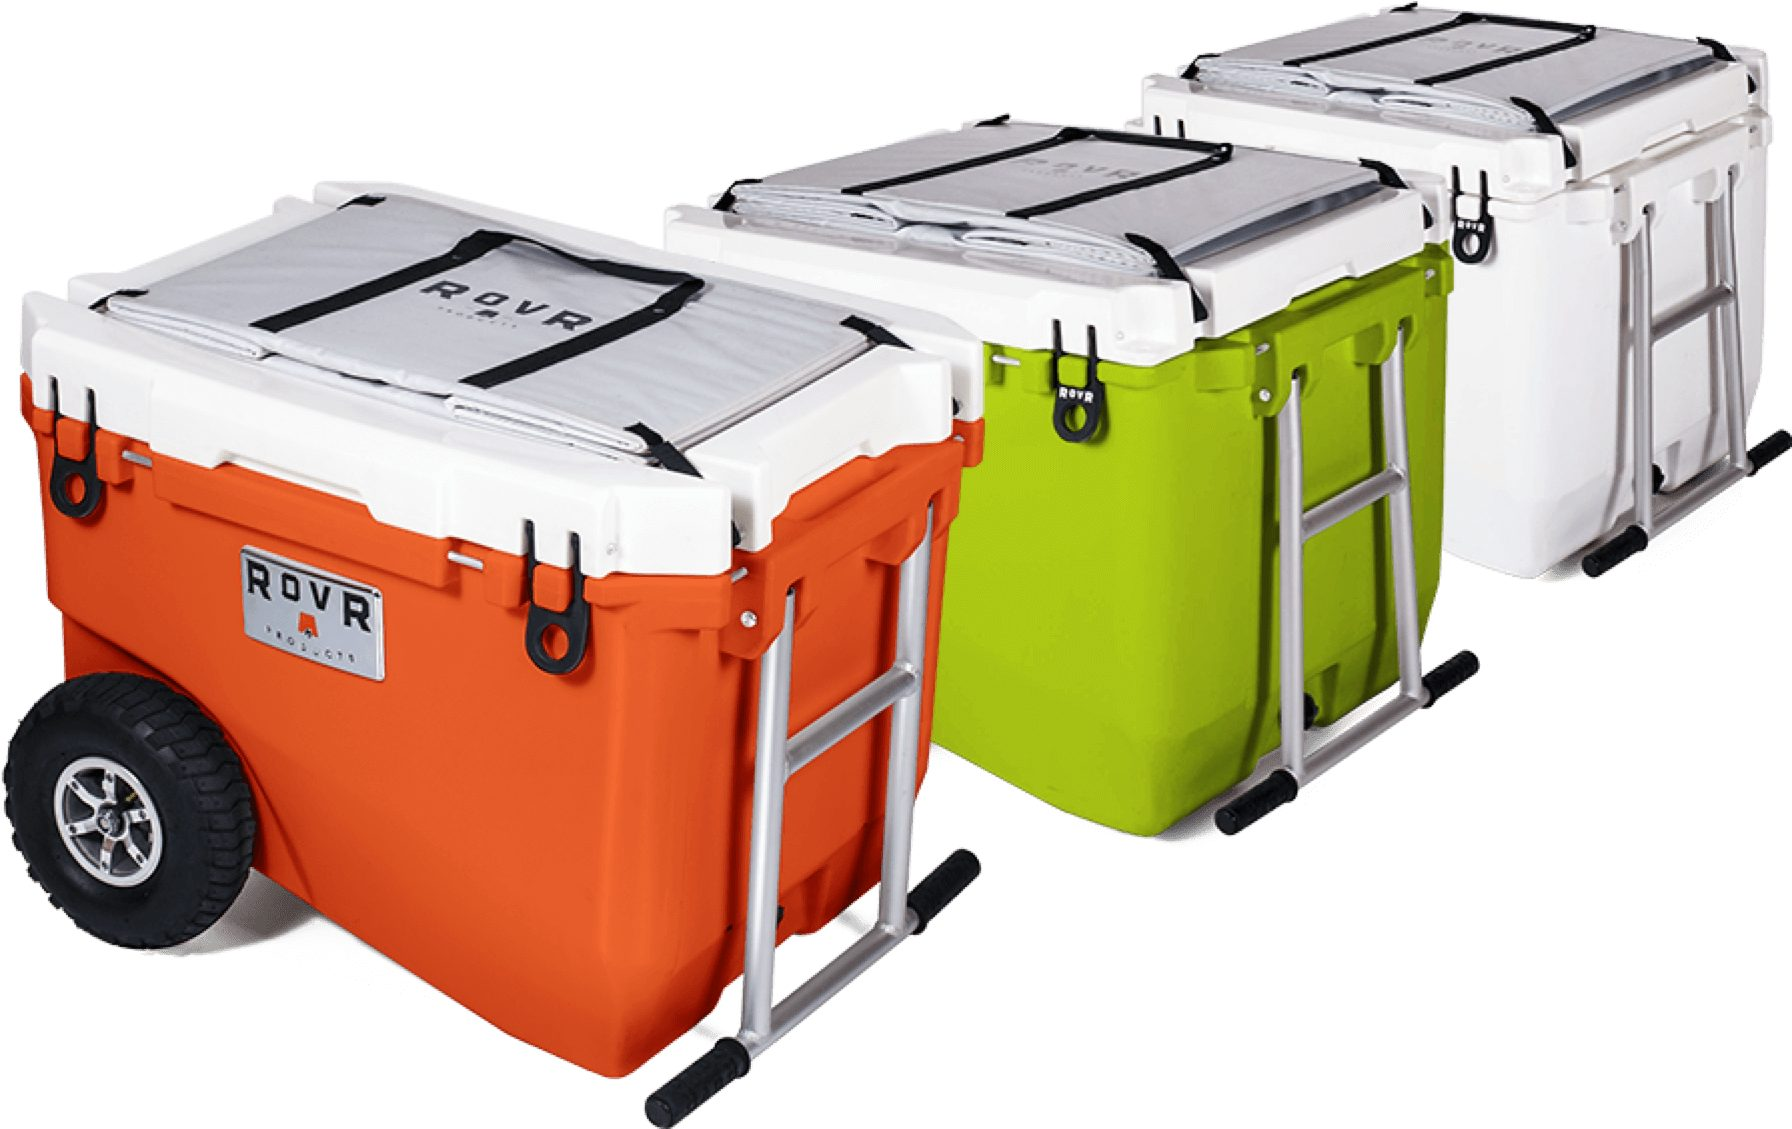 RovR RollR 60 cooler, reviewed by Mountain Life Media